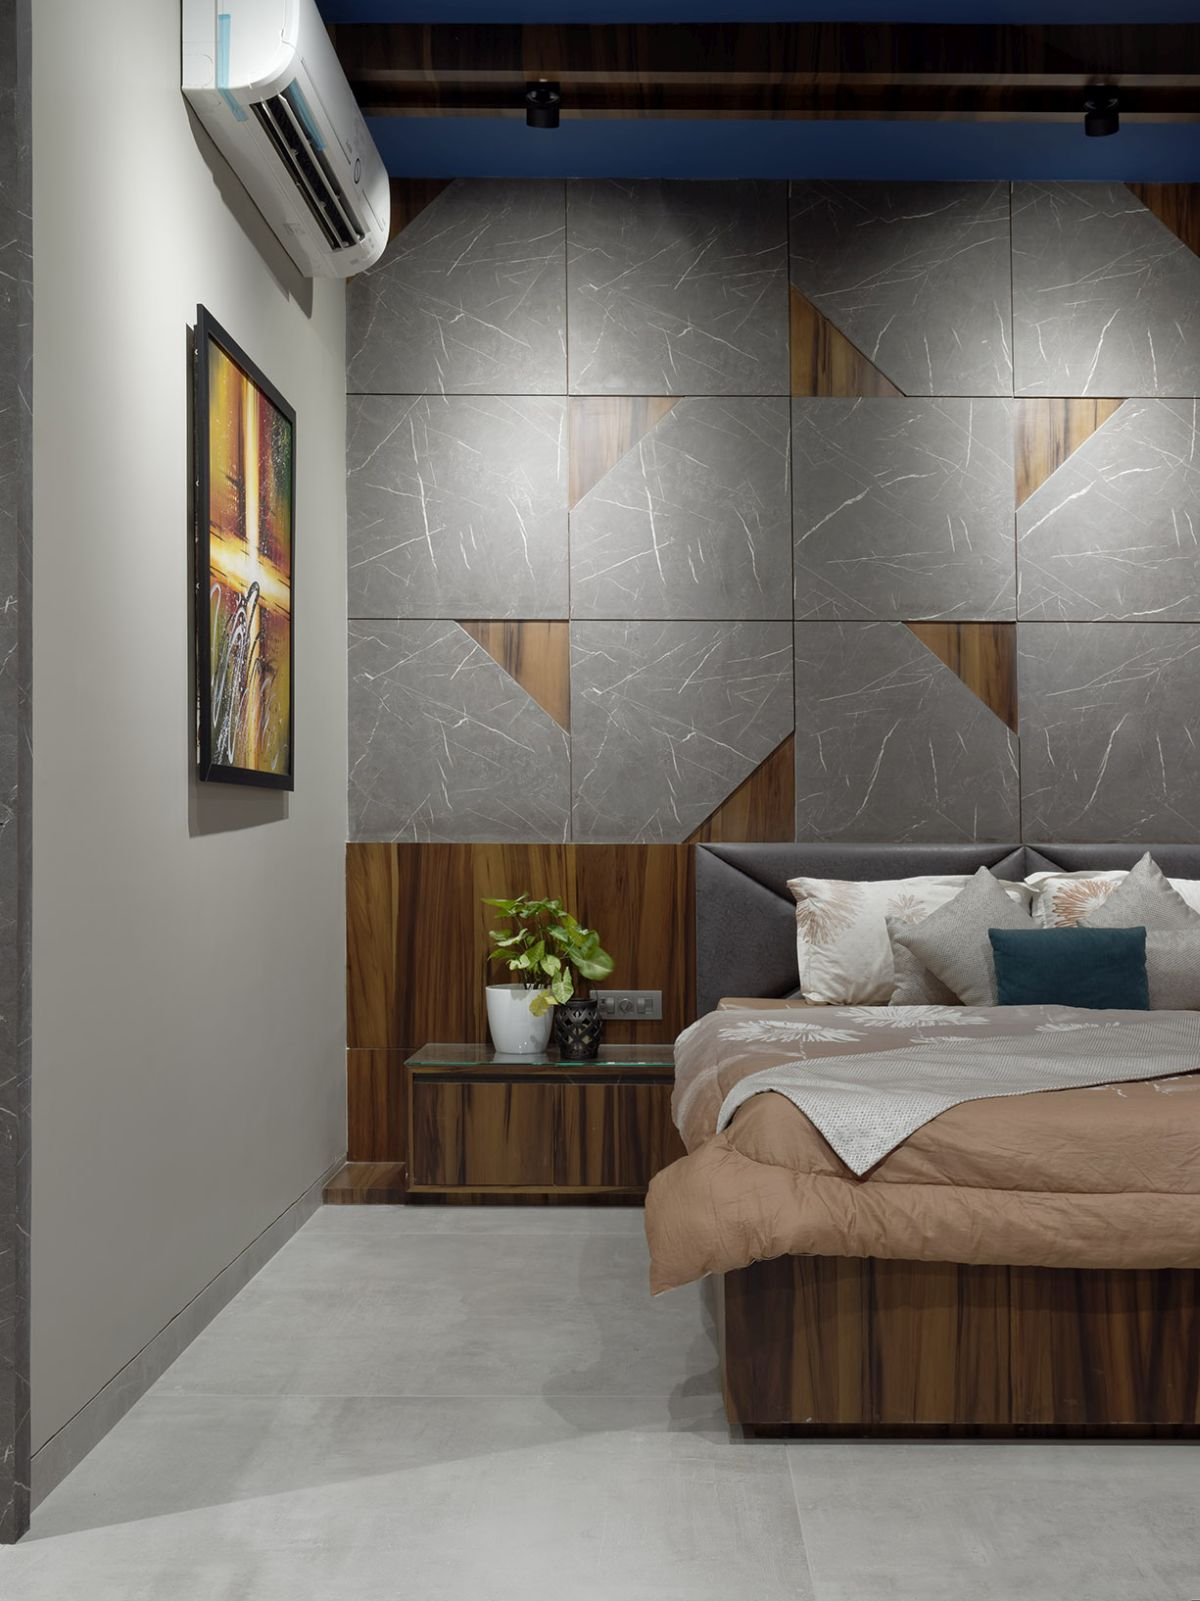 GHEI RESIDENCE at NANDED, MAHARASHTRA, by 4TH AXIS DESIGN STUDIO 46